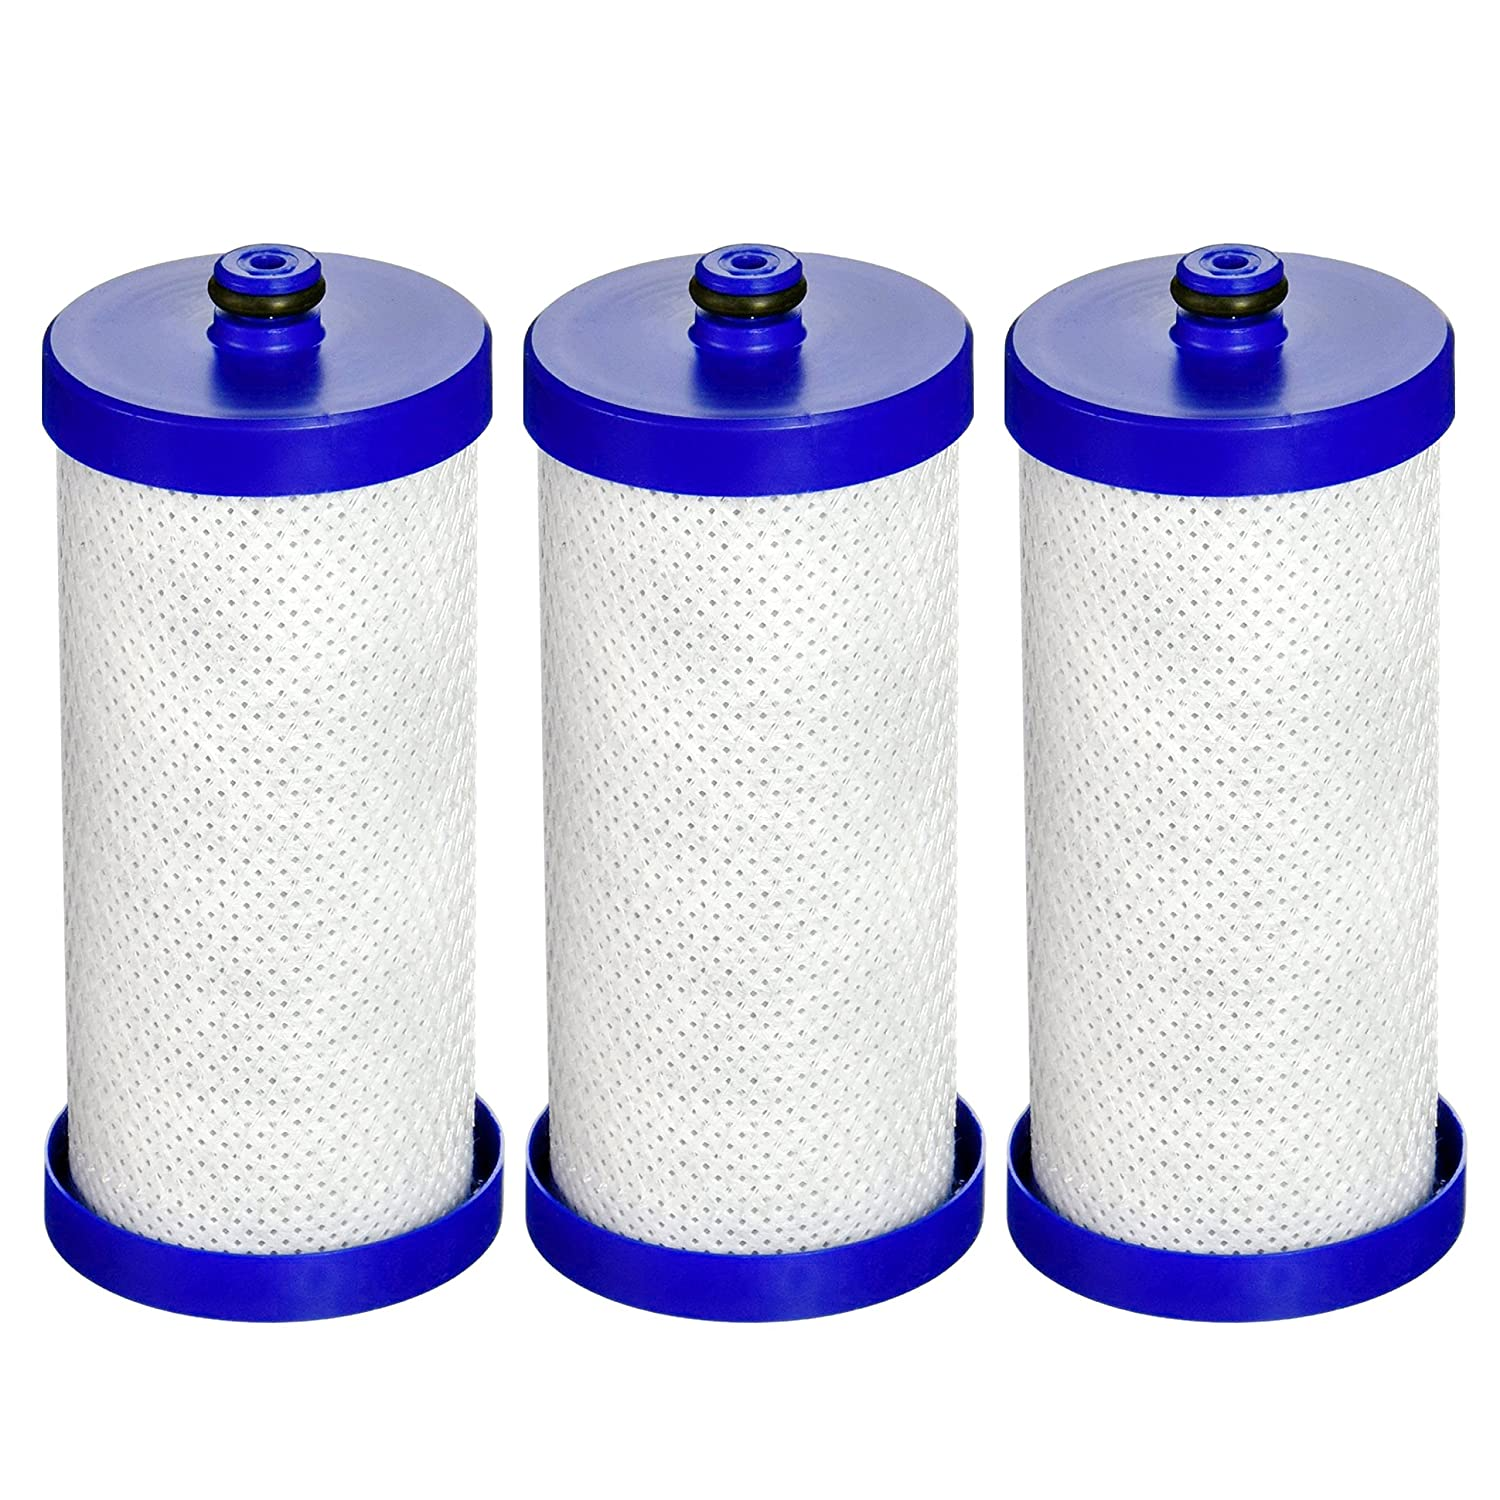 EcoAqua WF1CB-EFF Replacement Filter, Compatible with WF1CB, WFCB, RG100, NGRG2000, WF284, 9910, 469906, 469910, 3 Pack